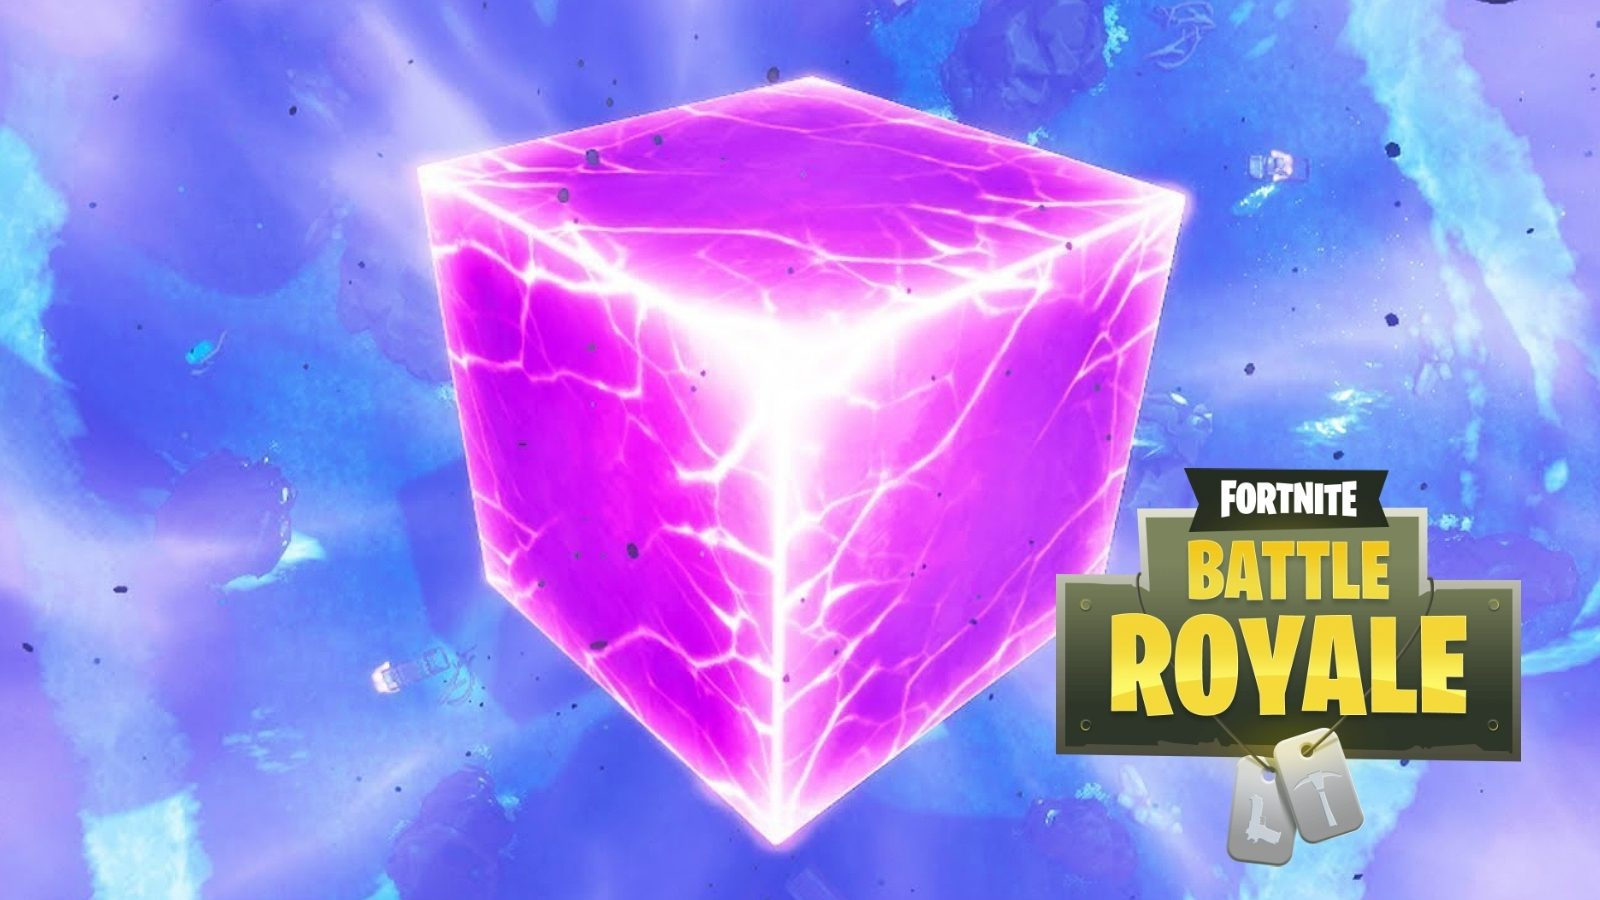 Fortnite Kevin The Cube Wallpapers Wallpapersafari